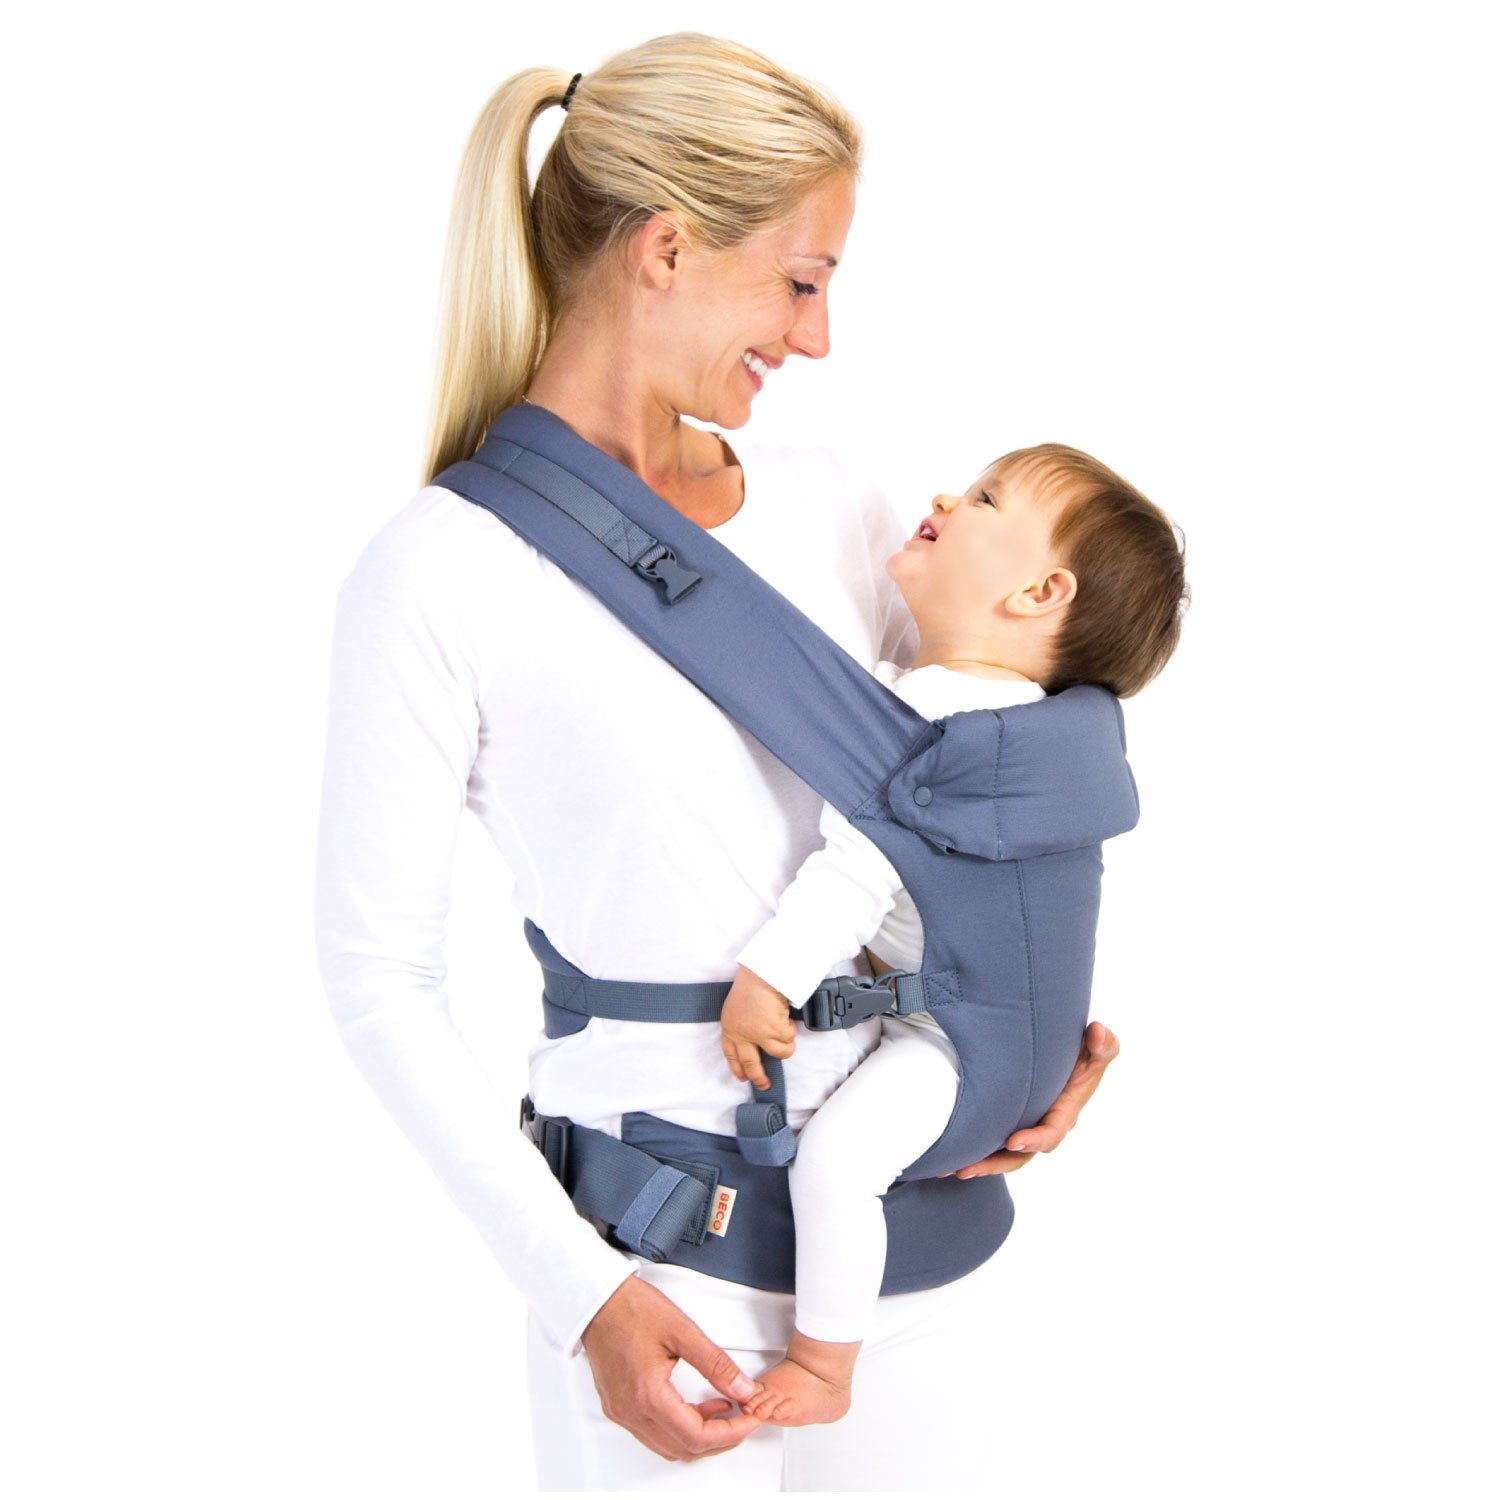 478abf4007f Amazon.com   Gemini Performance Baby Carrier By Beco - Multi-Position Soft  Structured Sling w  Adjustable Straps   Comfort Padding for Infant Toddler  Hip ...